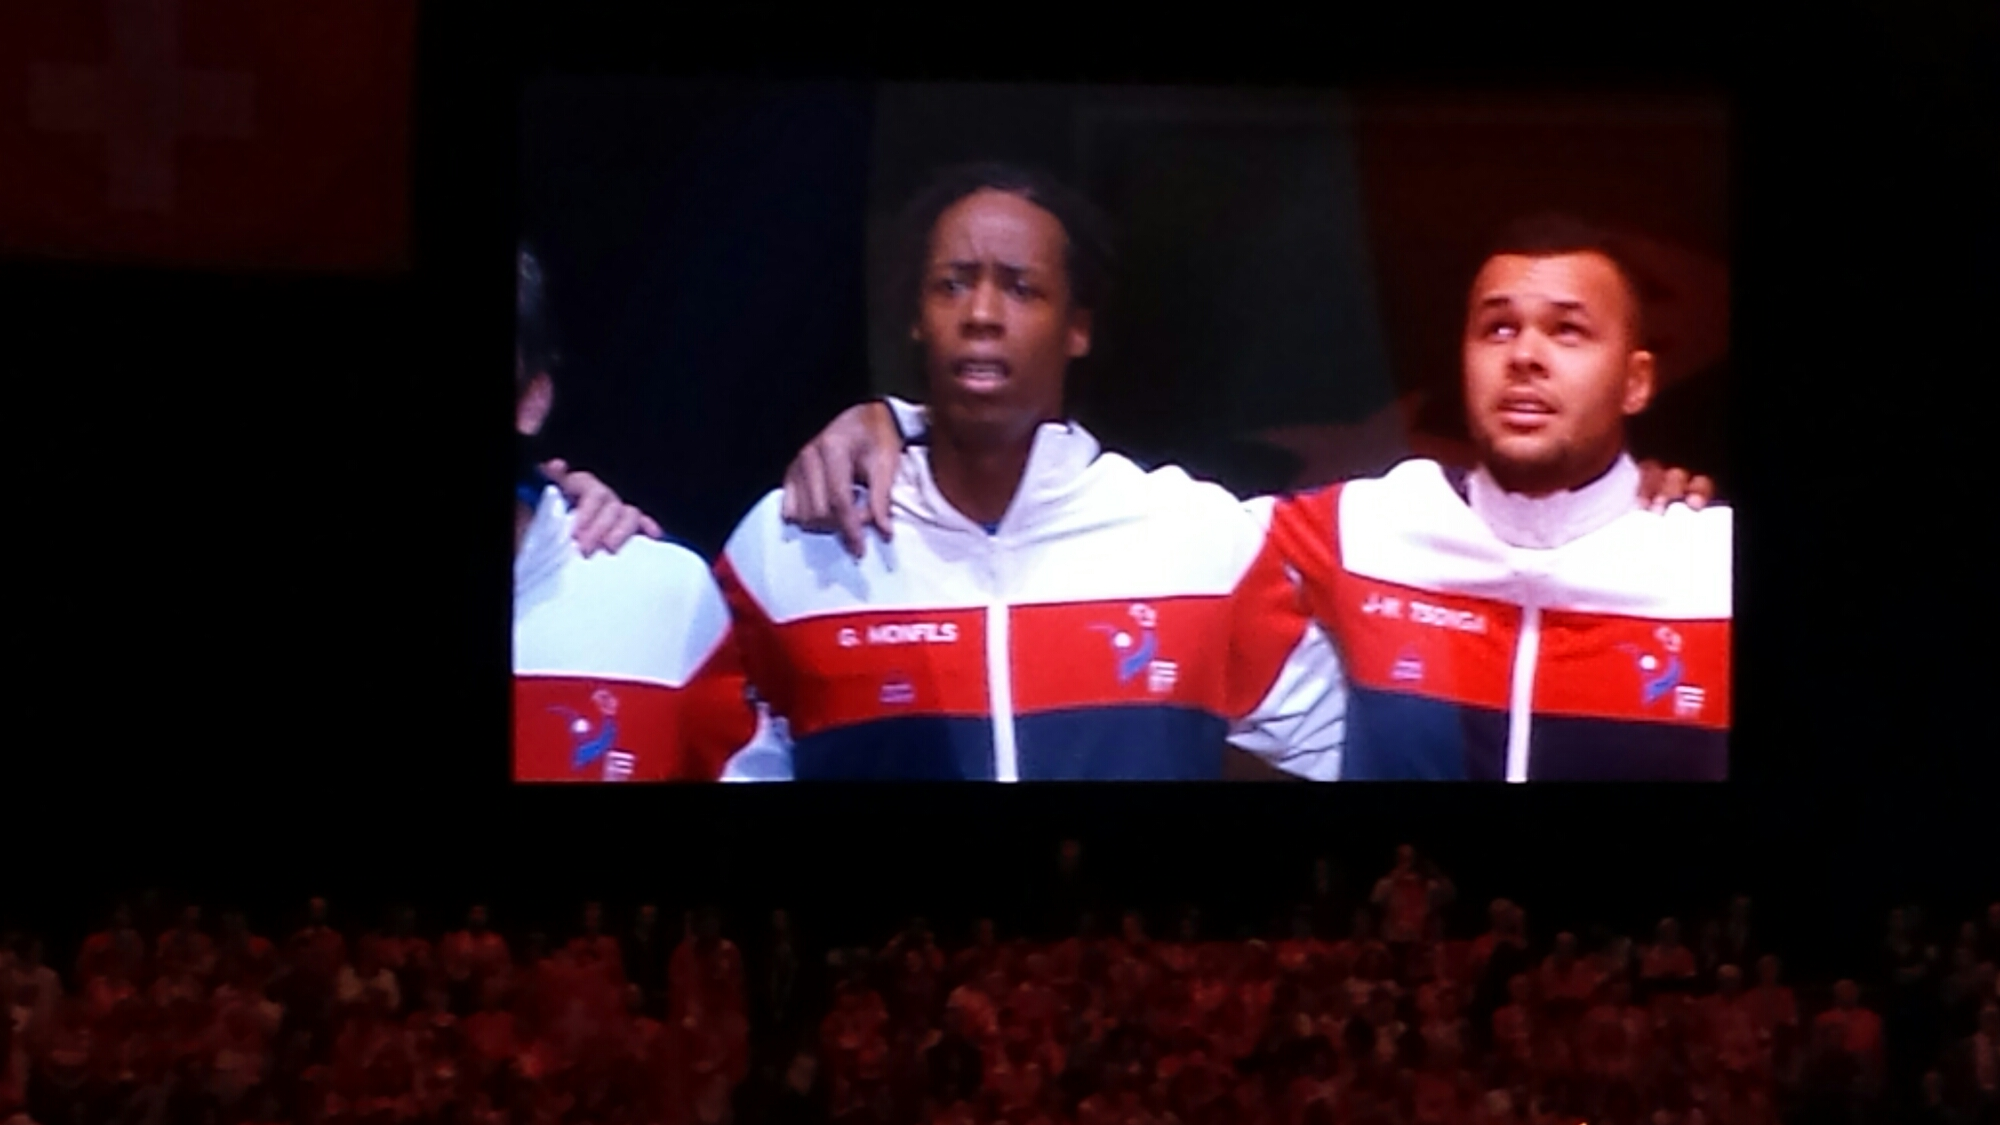 Monfils Tsonga Sing National Anthem